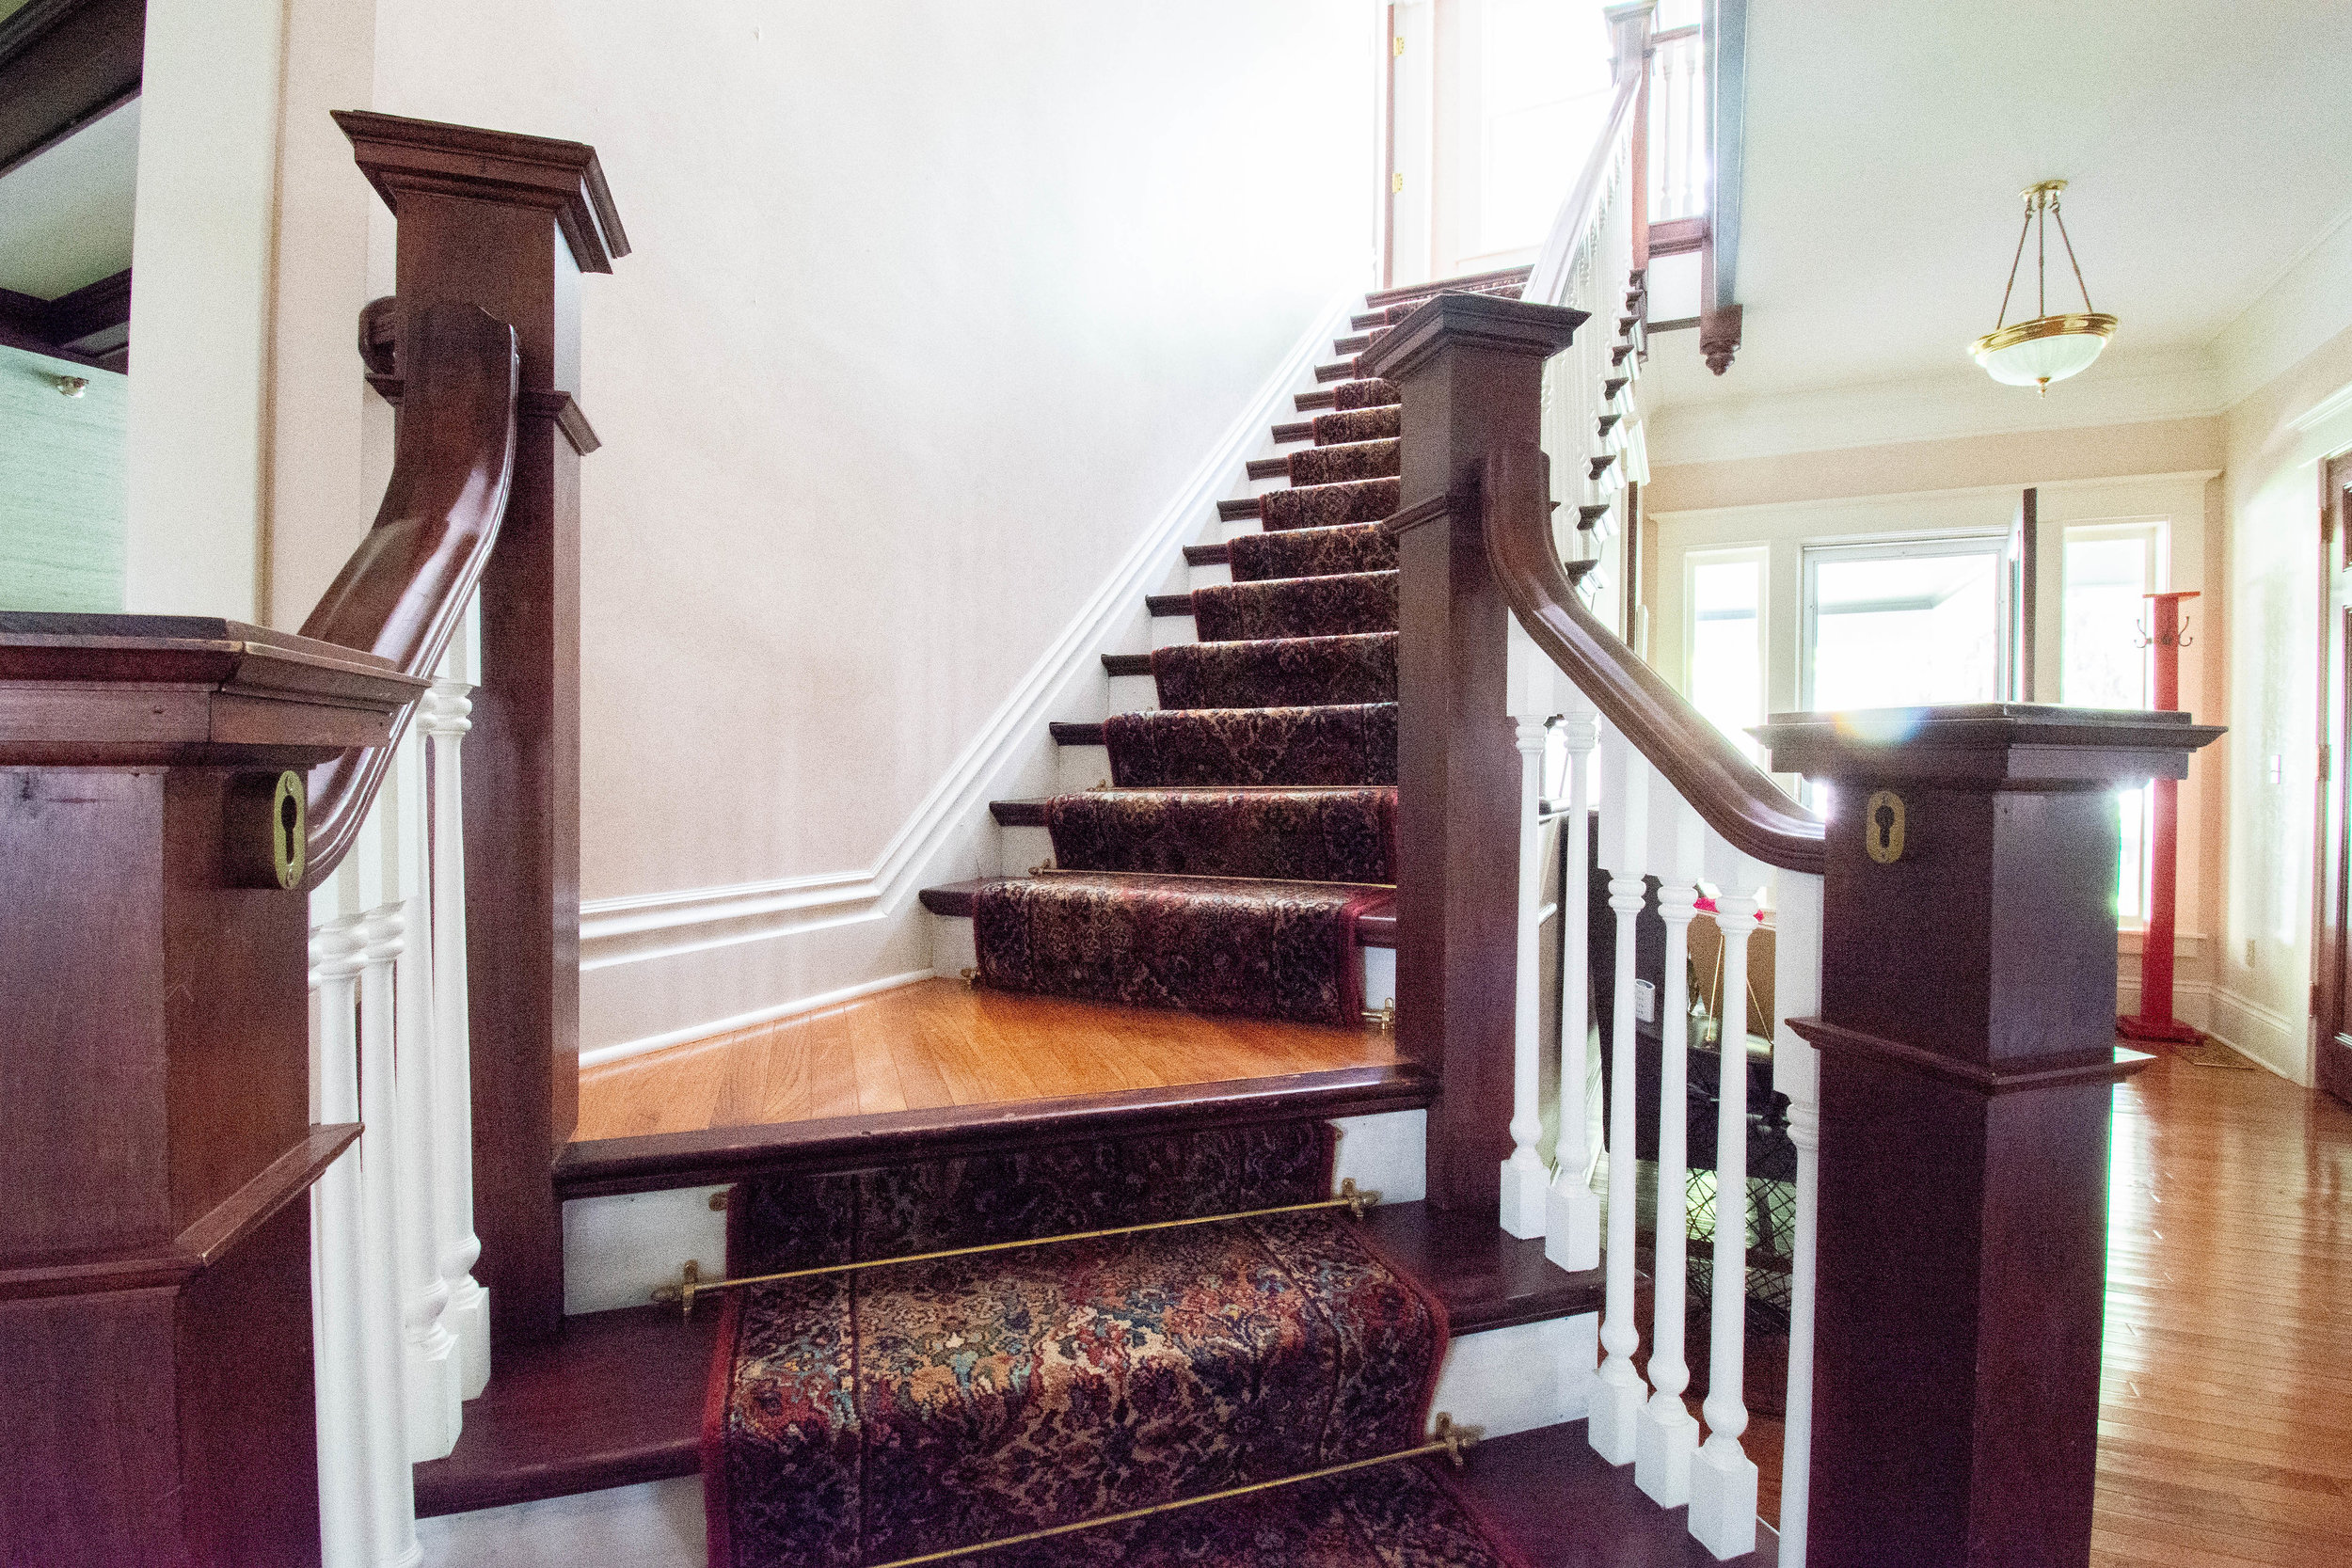 "<img alt= ""Fron hall stairs"" />"